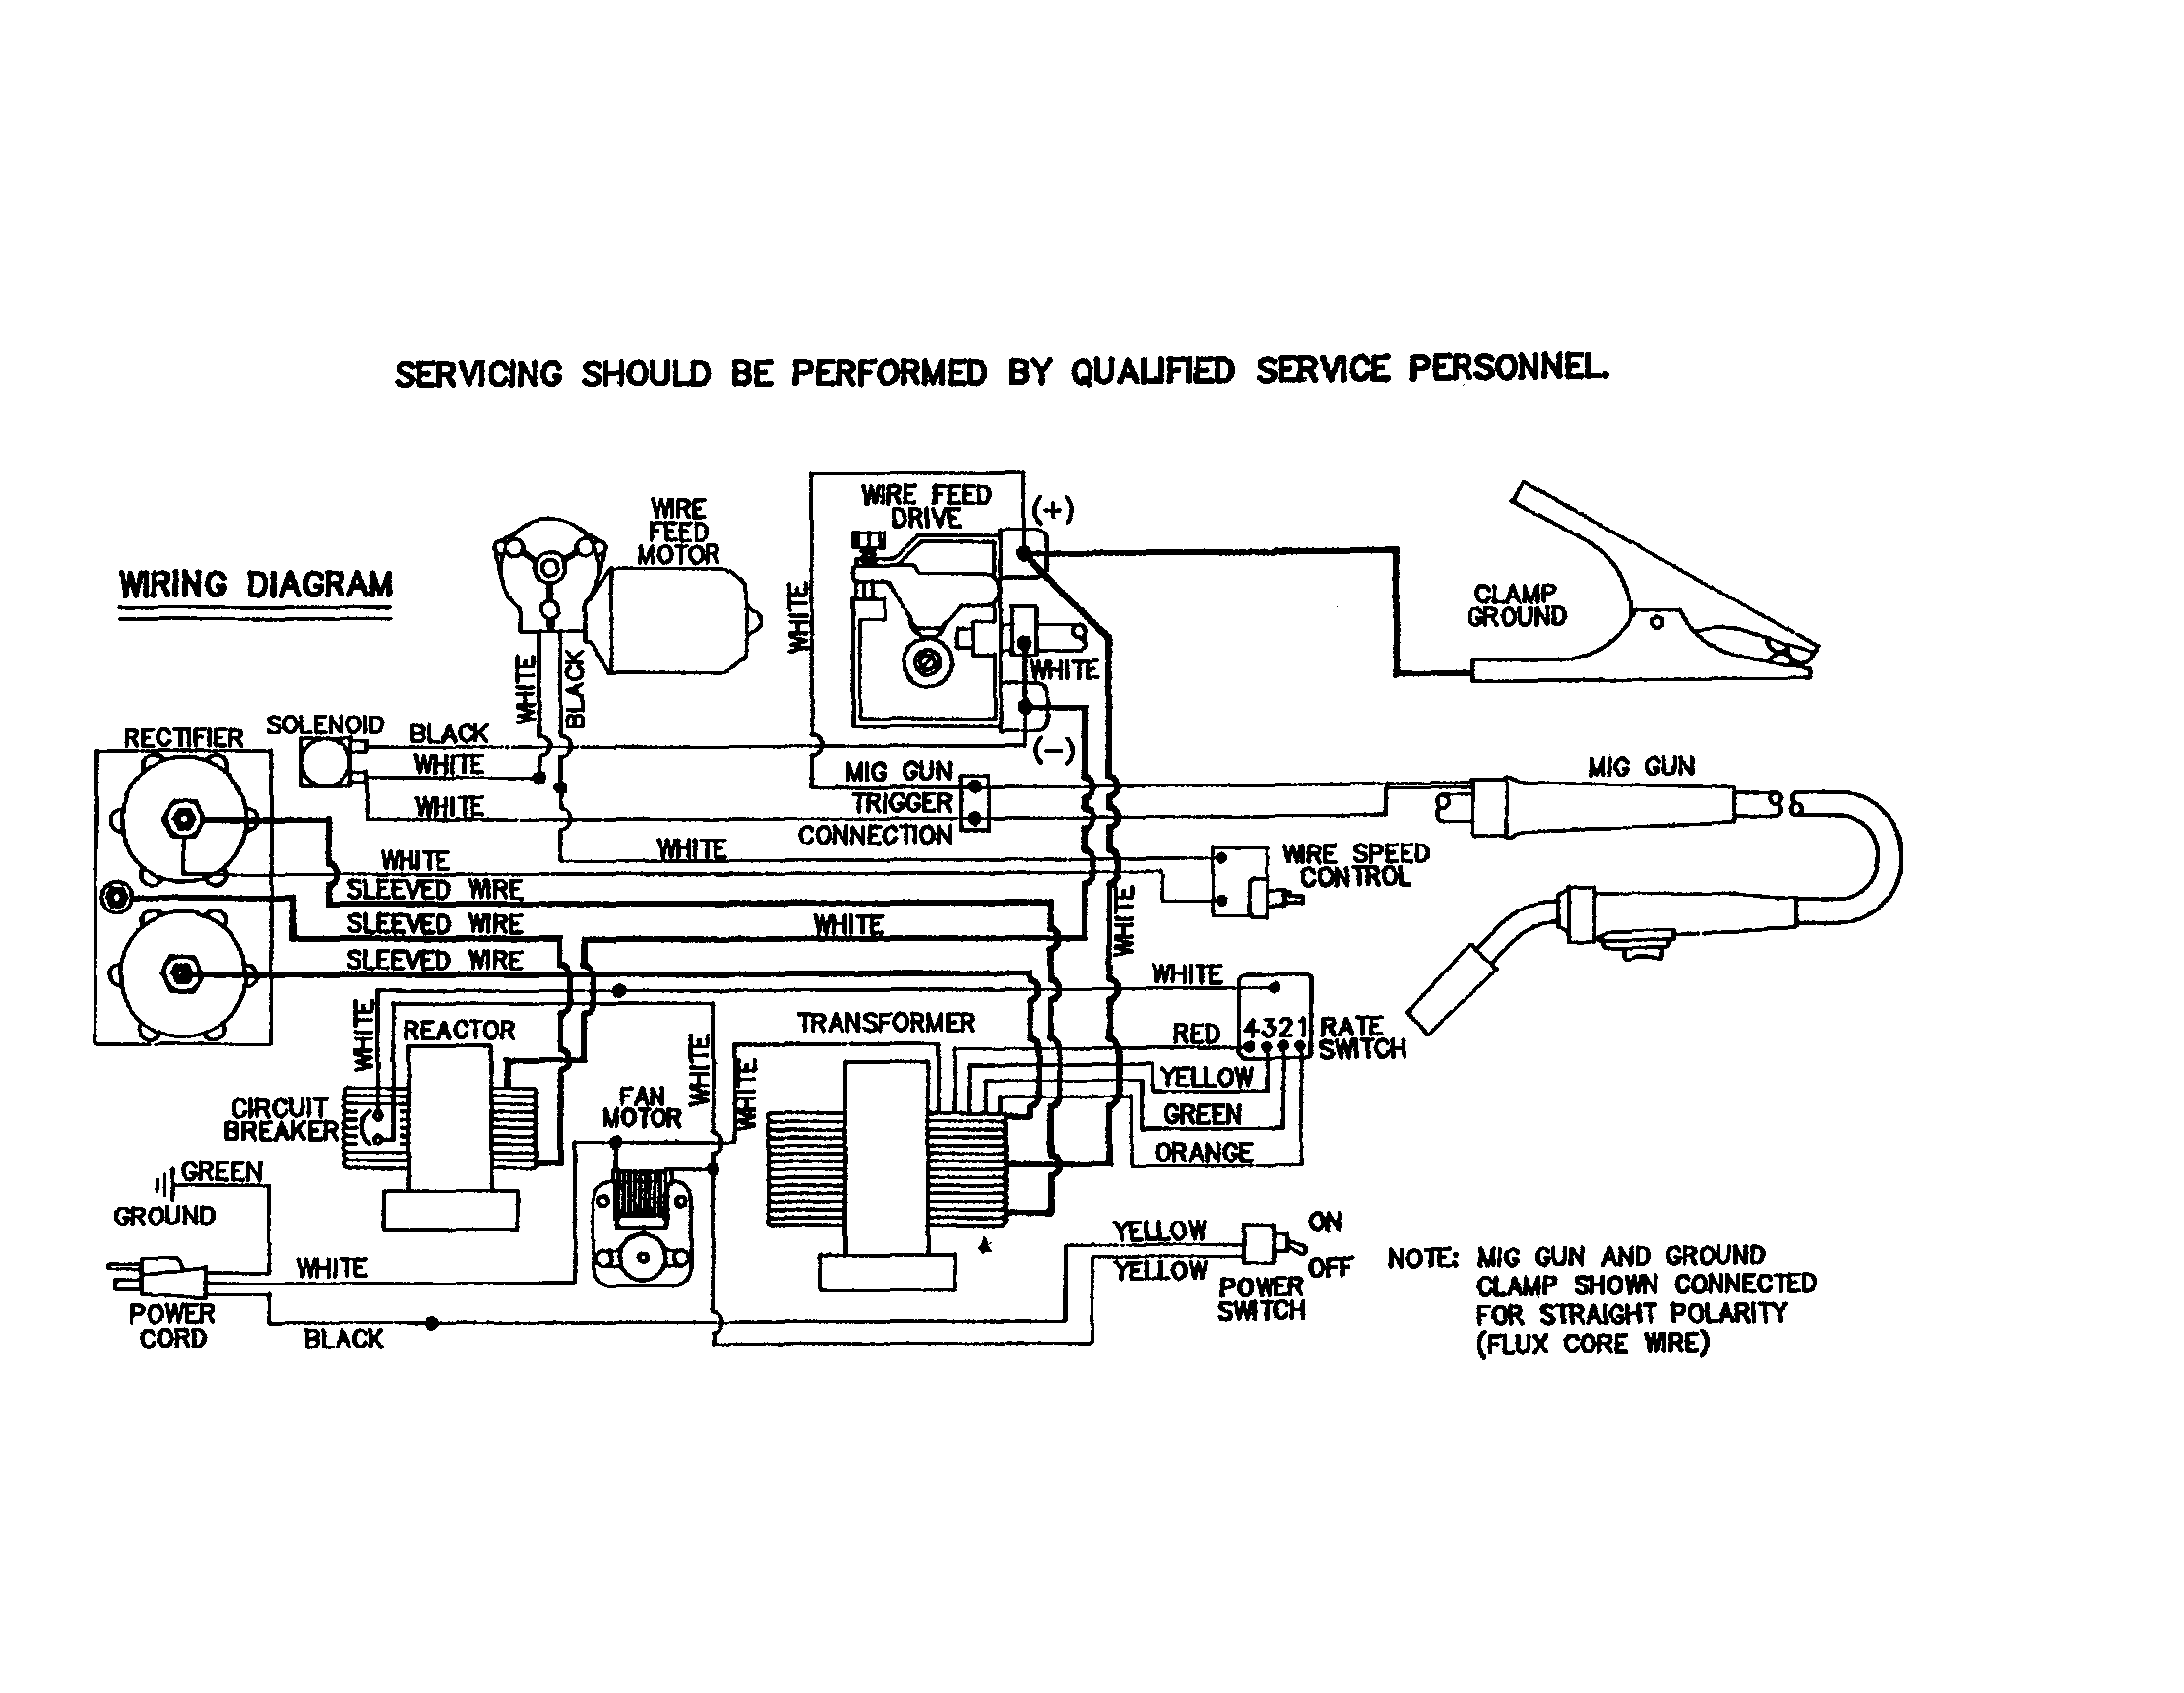 Icm Gm Iron Duke Engine Diagram Wiring For Free Further 370x250 Chevrolet Cavalier 3403201 Likewise 11910 Moreover Together With 17a063e18510ede1a972bc35adbb2320